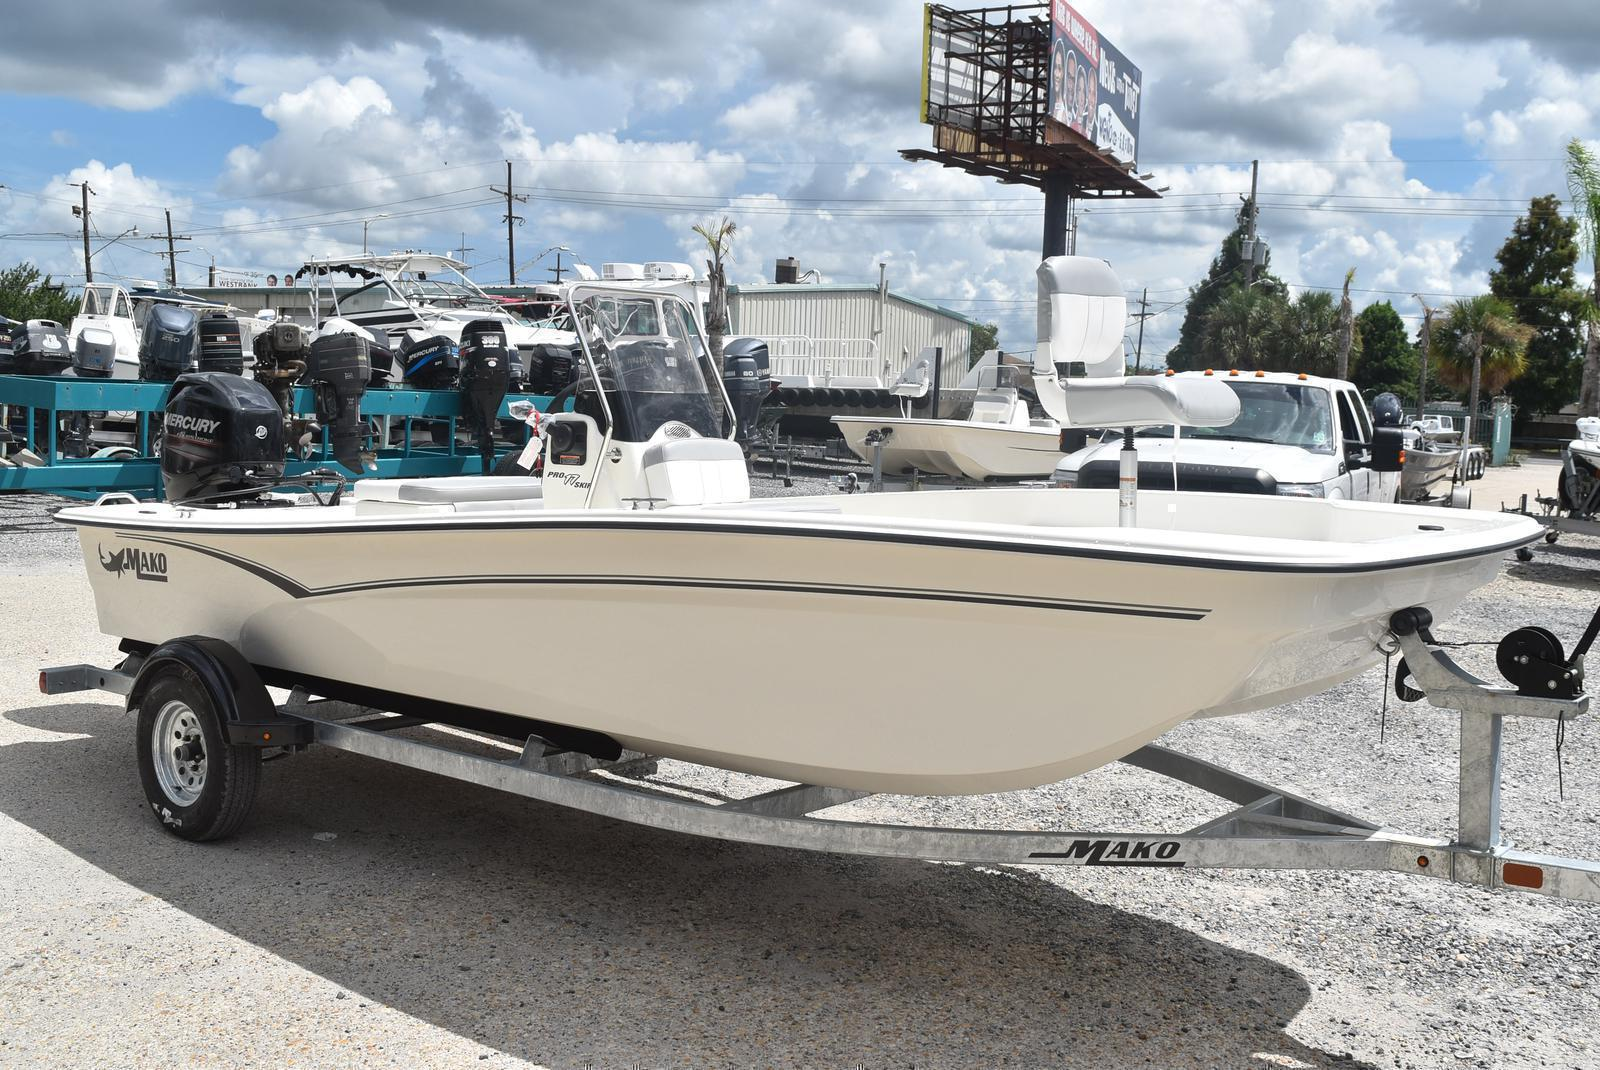 2020 Mako boat for sale, model of the boat is Pro Skiff 17, 75 ELPT & Image # 674 of 702